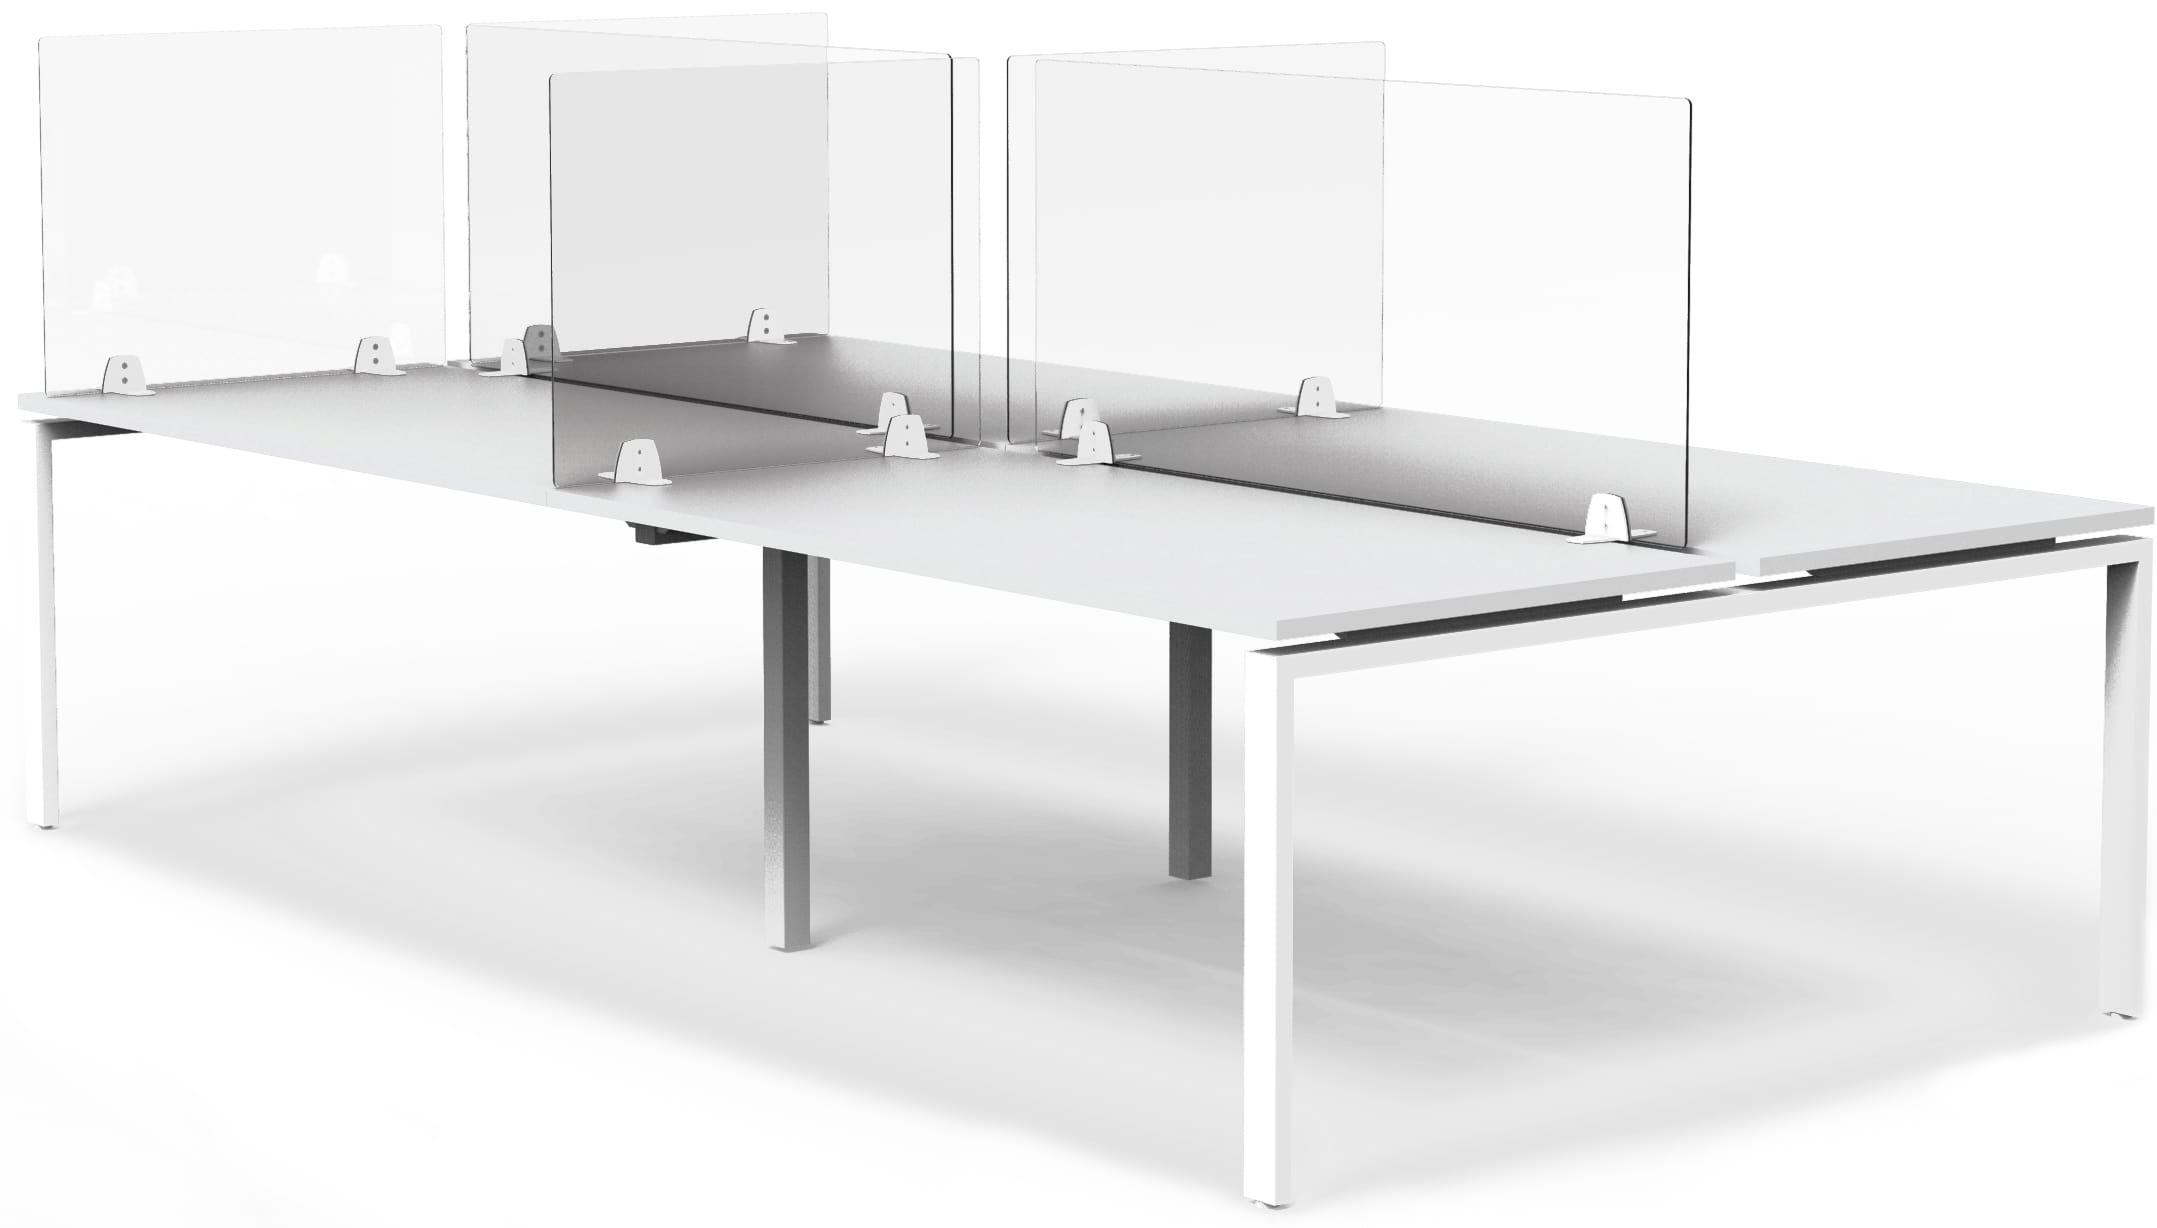 Full Acrylic Desk Sneeze Shields Screens for Open Plan Offices